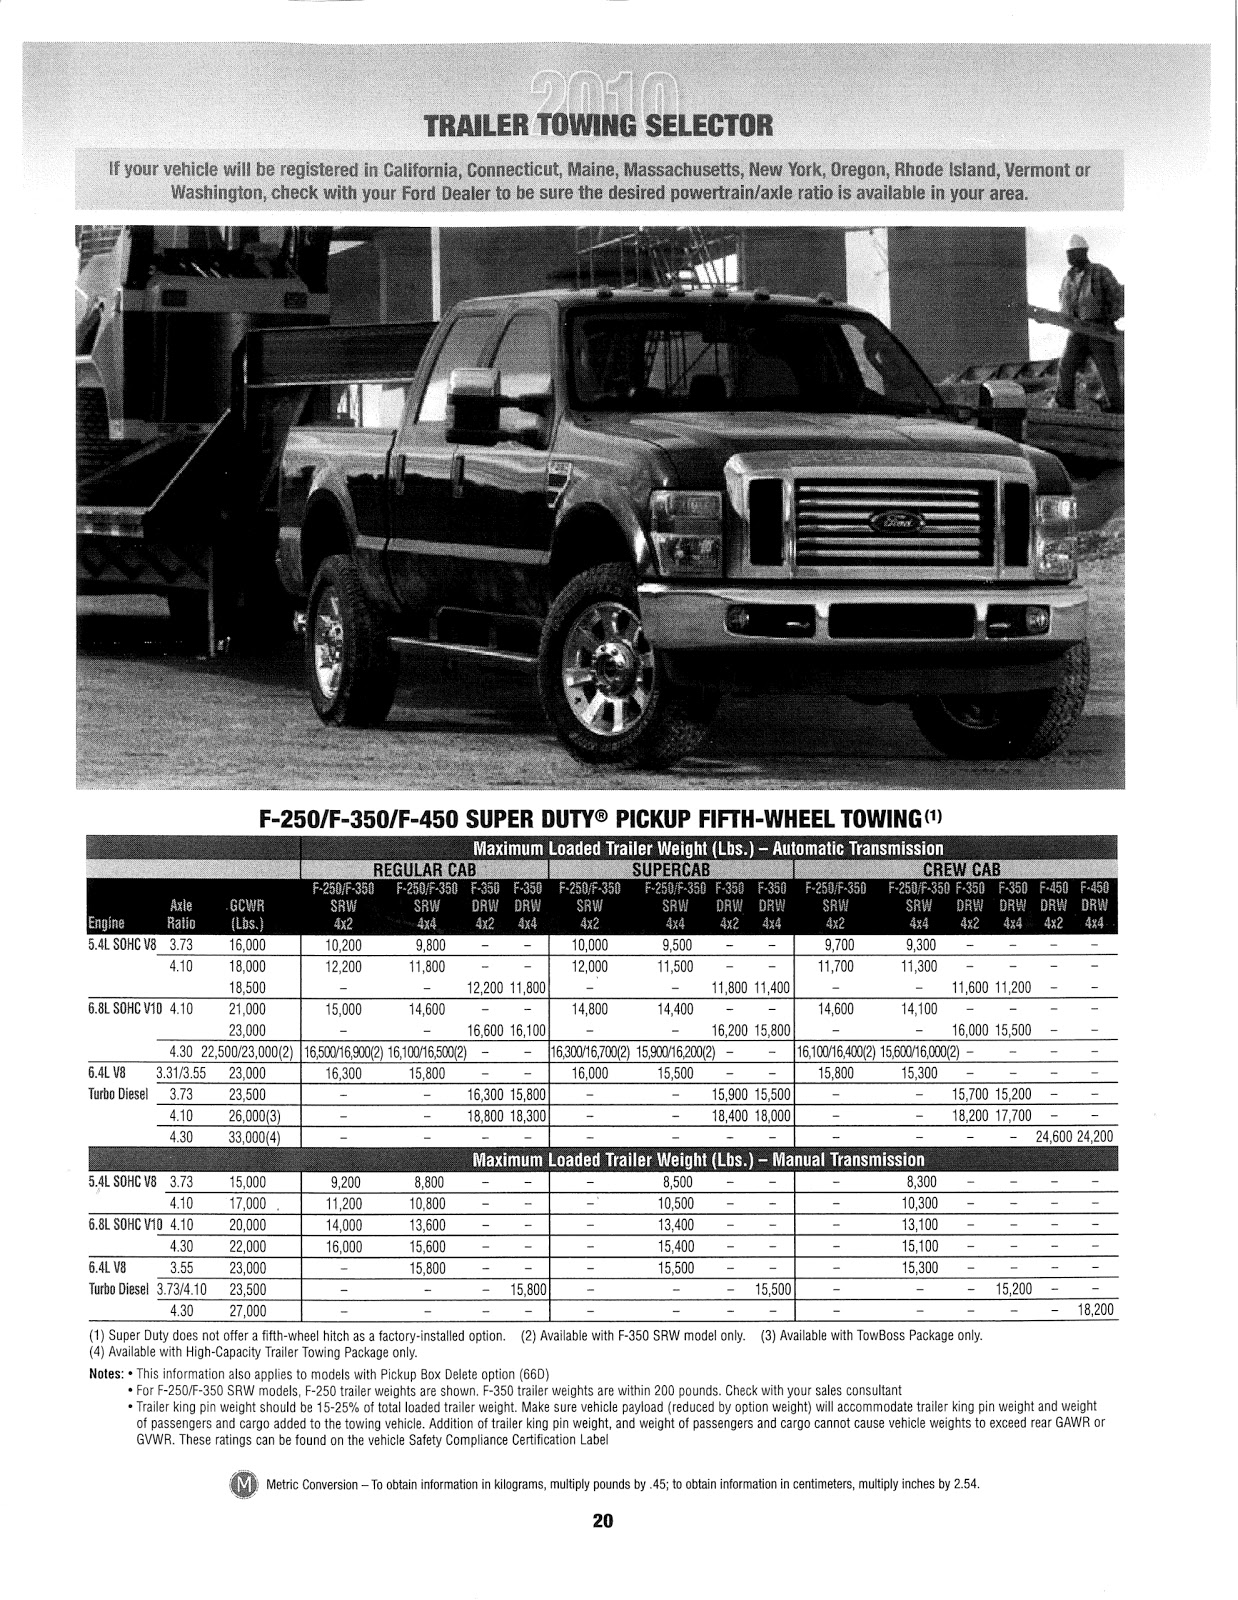 F350 Towing Capacity >> Ed Koehn Ford Lincoln: 2010 Ford Super Duty Pickup Towing Guide